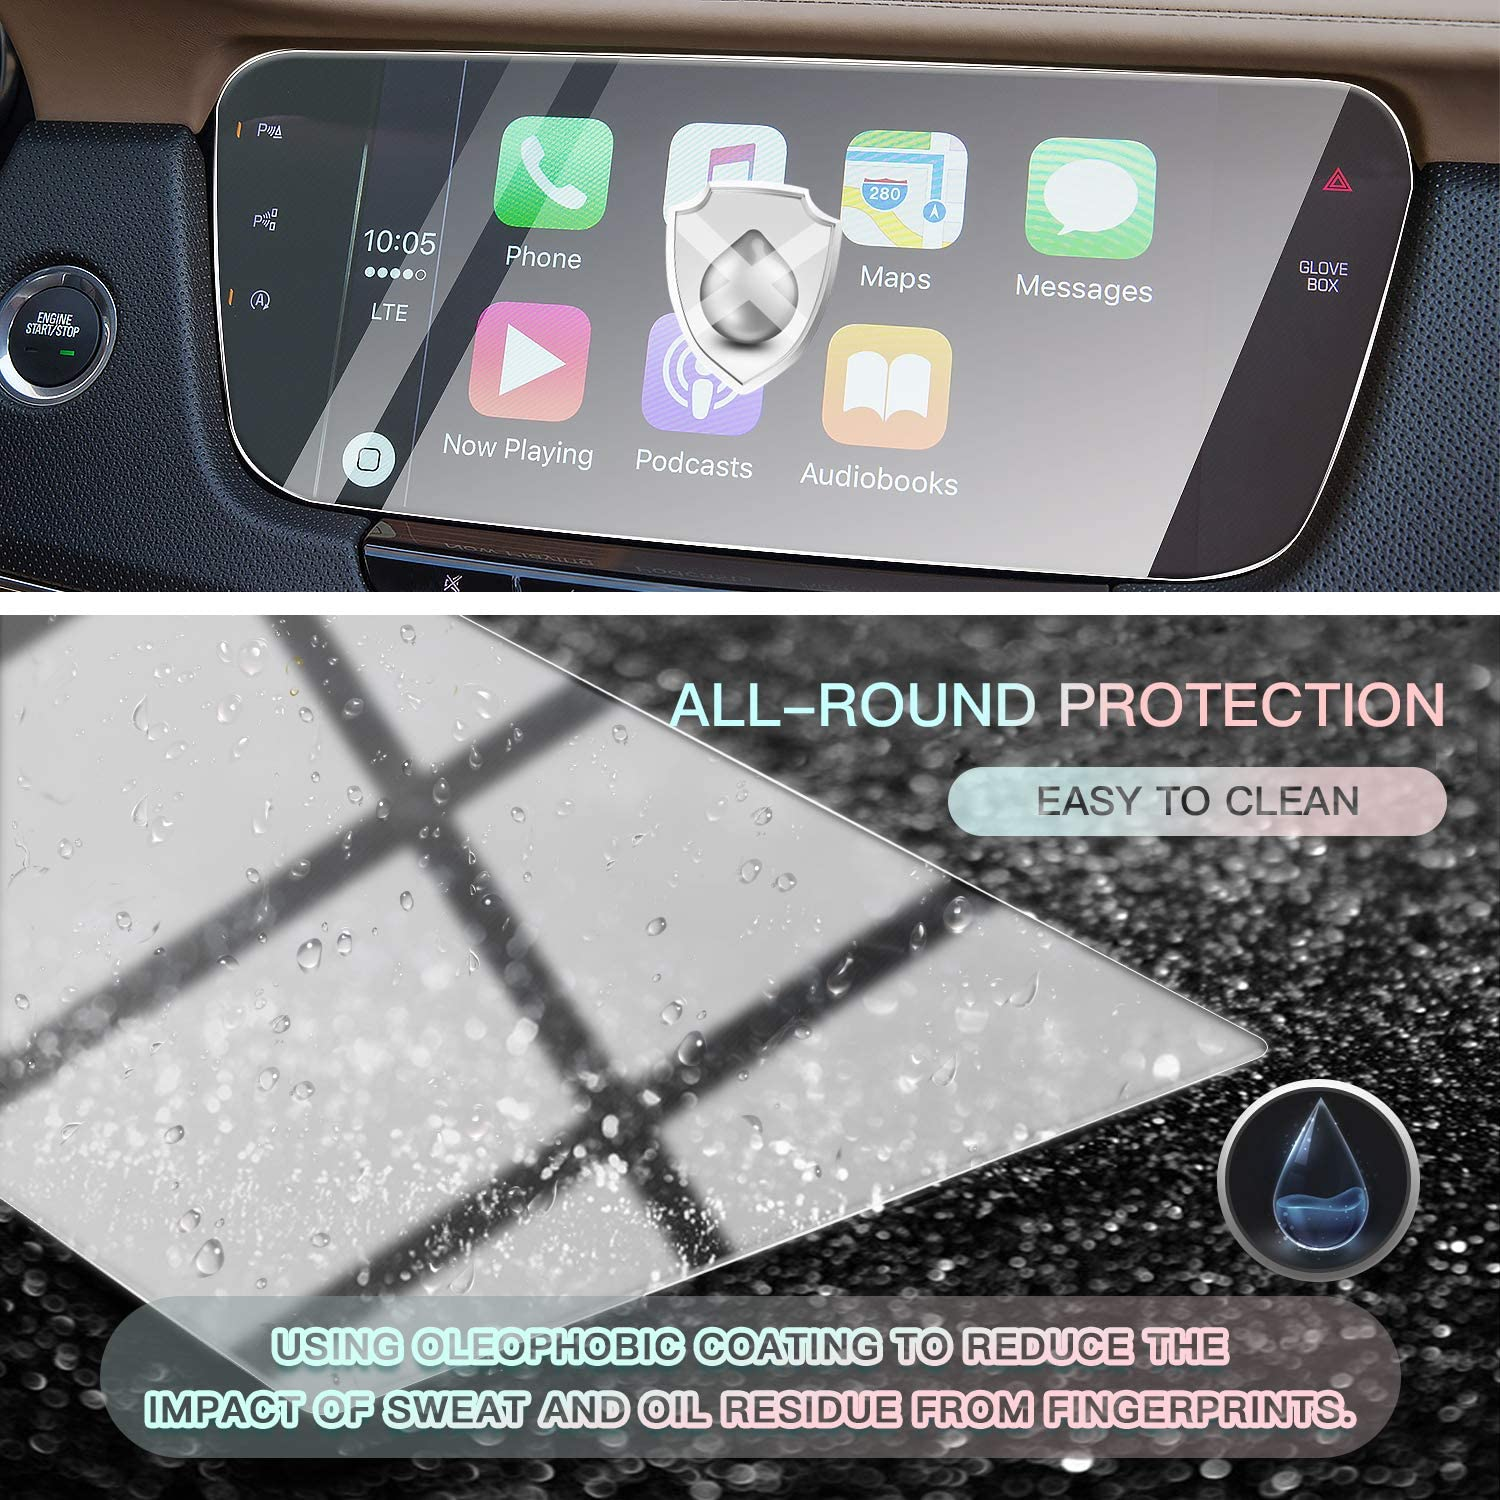 CDEFG Center Control Navigation Touch Screen Protector Infotainment Display Protector for 2017 2018 2019 Cadillac CT6 Tempered Glass HD Scratch Resistance